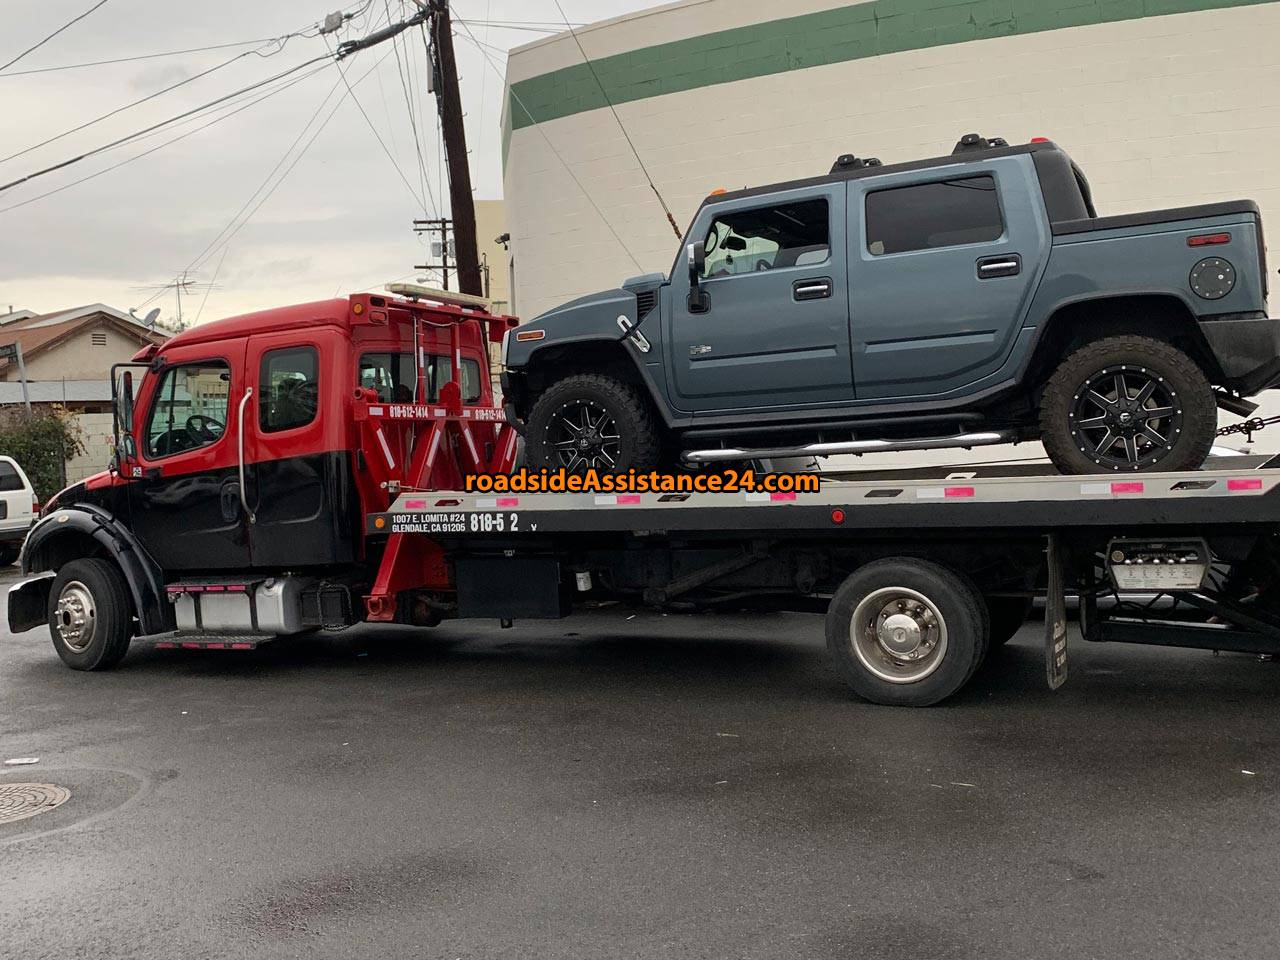 911 Towing Services